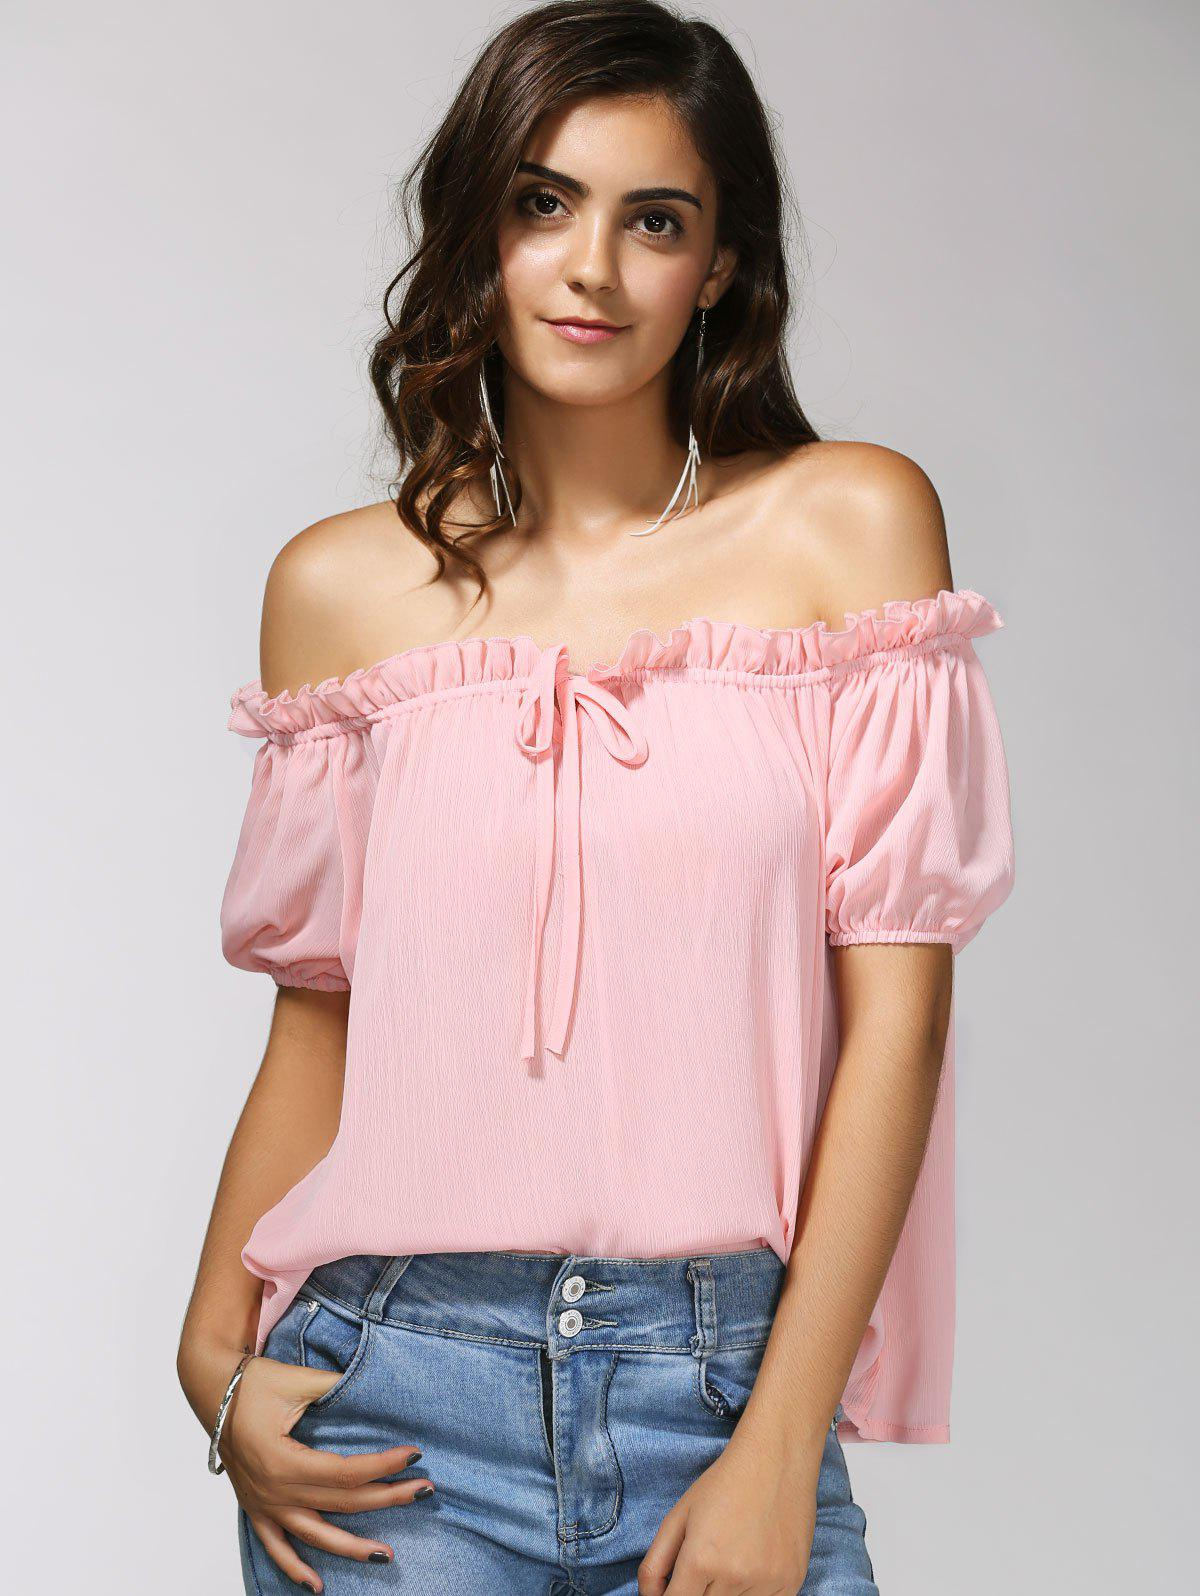 Off-The-Shoulder Puff Sleeve Bowknot Charming Women's Blouse - LIGHT PINK M